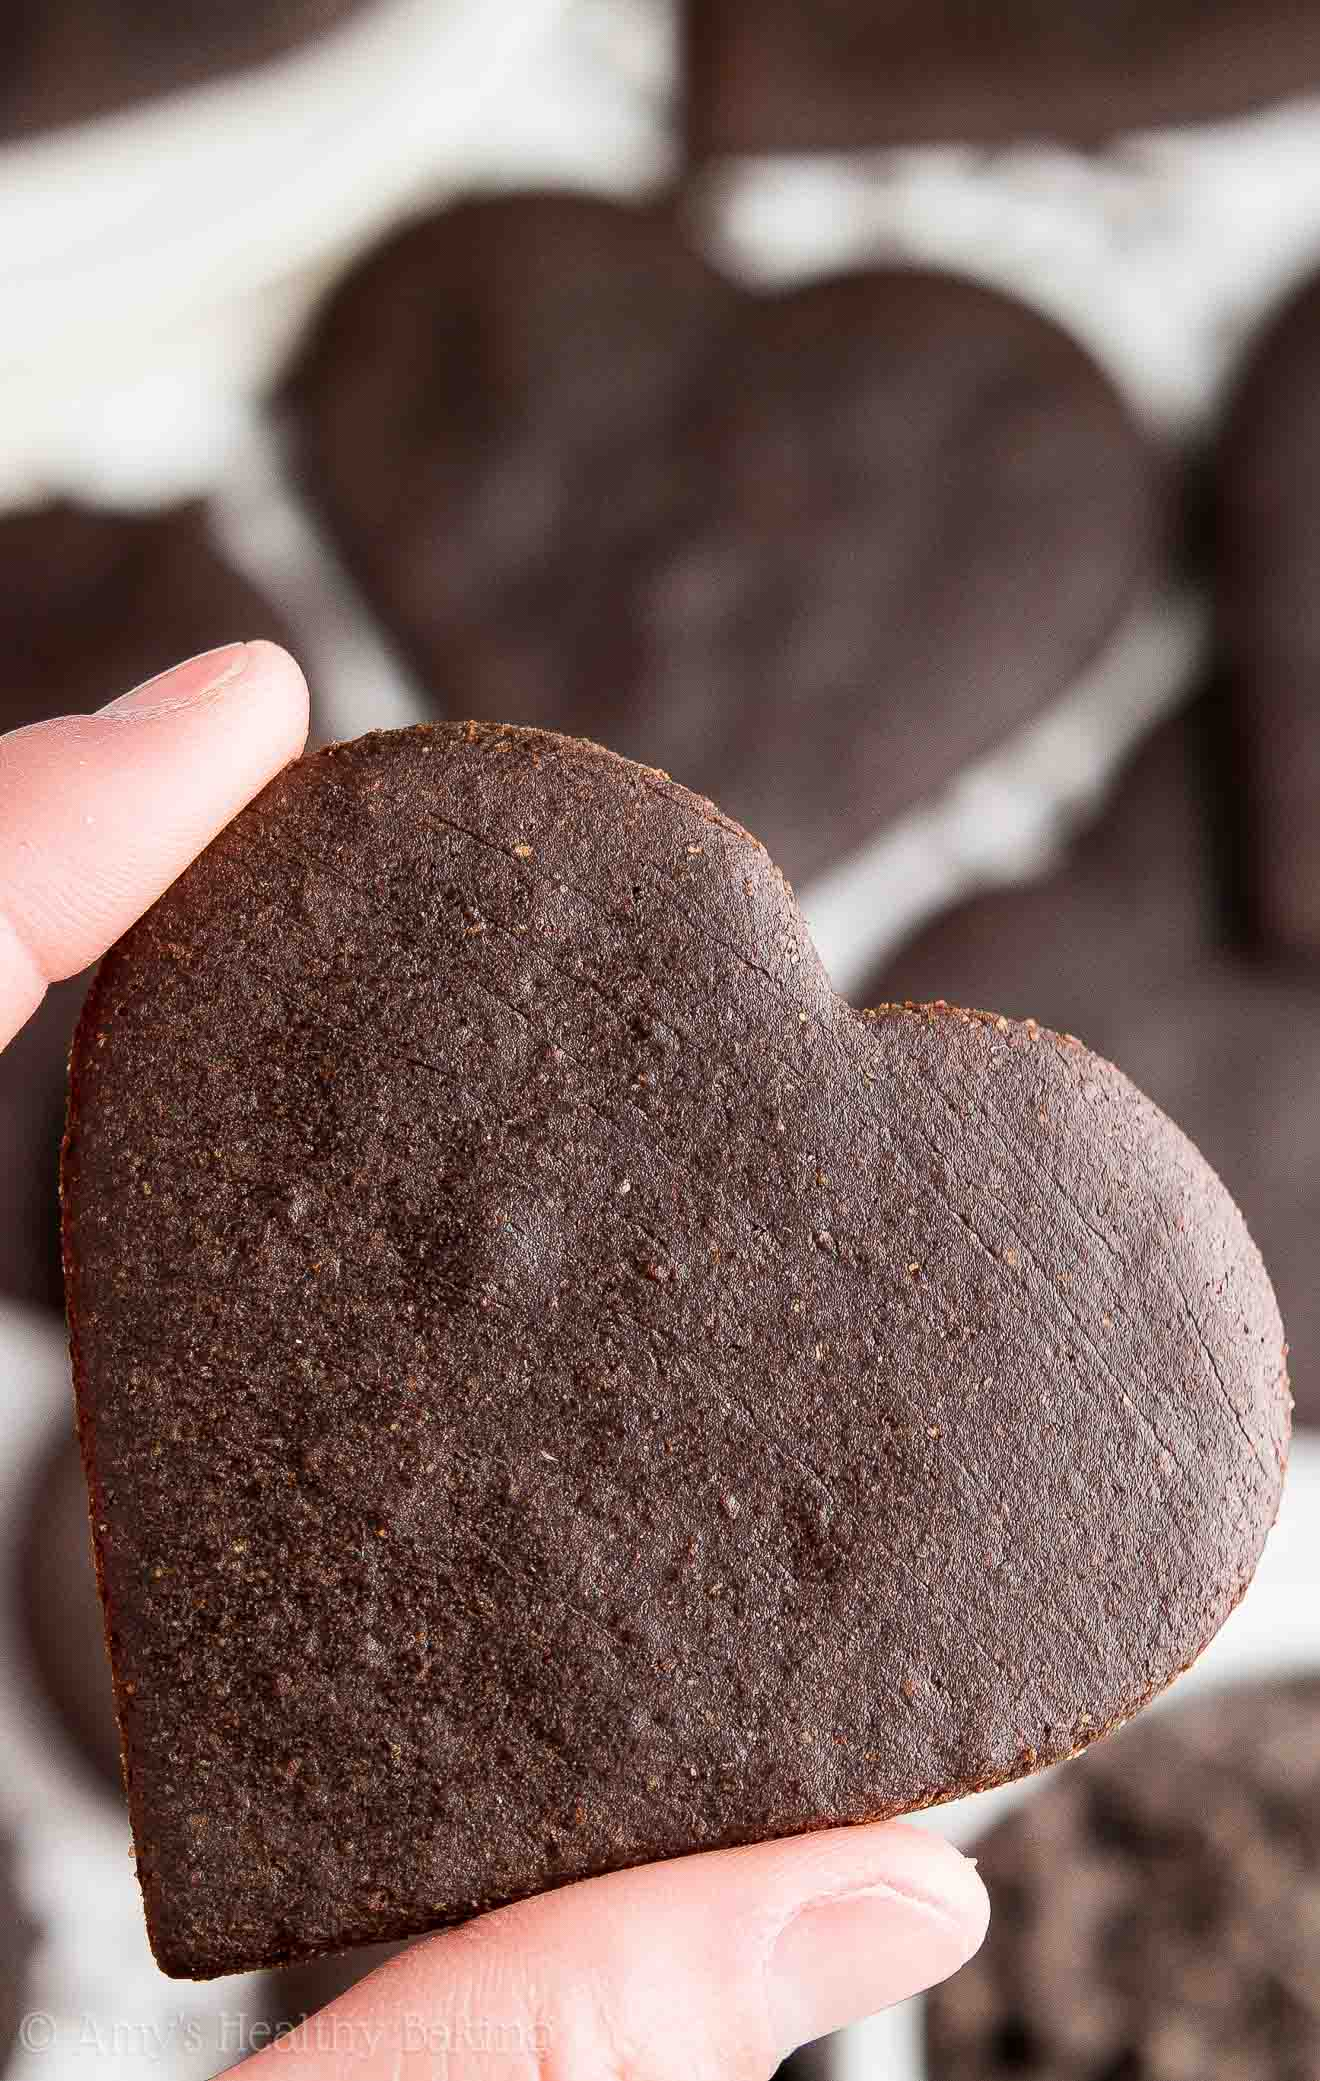 Thumb + index finger holding a heart-shaped dark chocolate sugar cookie